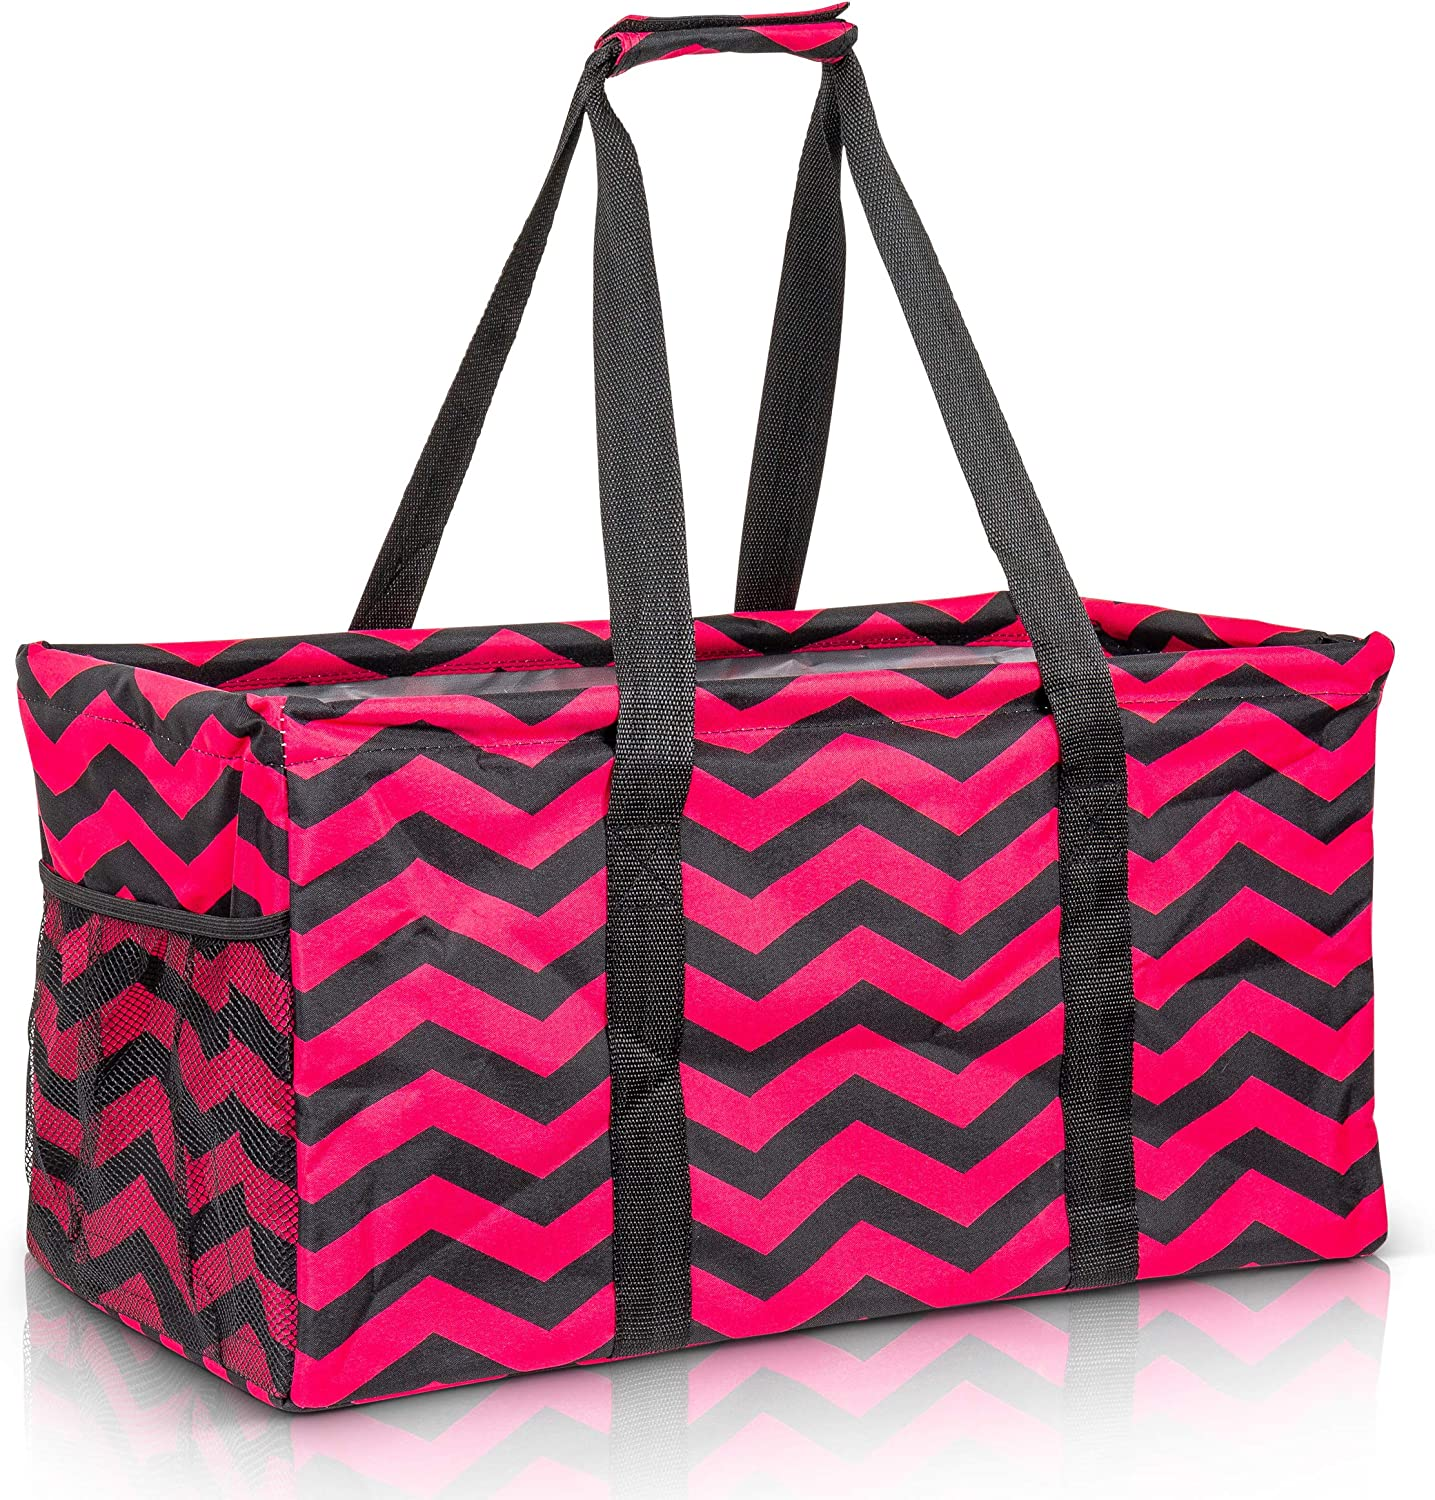 Extra Large Utility Tote Bag - Oversized Collapsible Pool Beach Canvas Basket